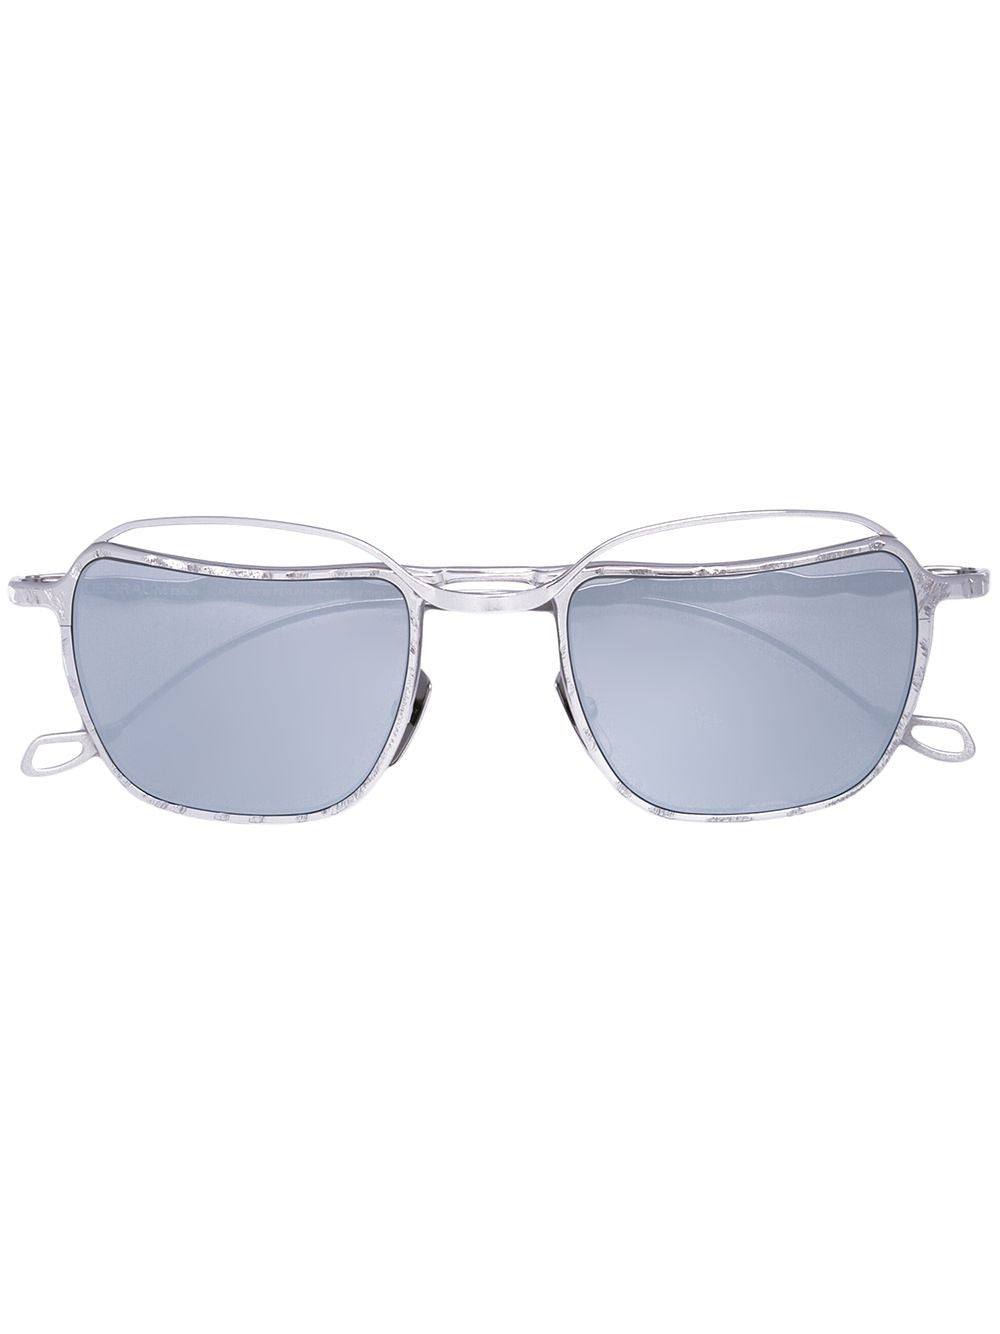 H71 SILVER SUNGLASSES